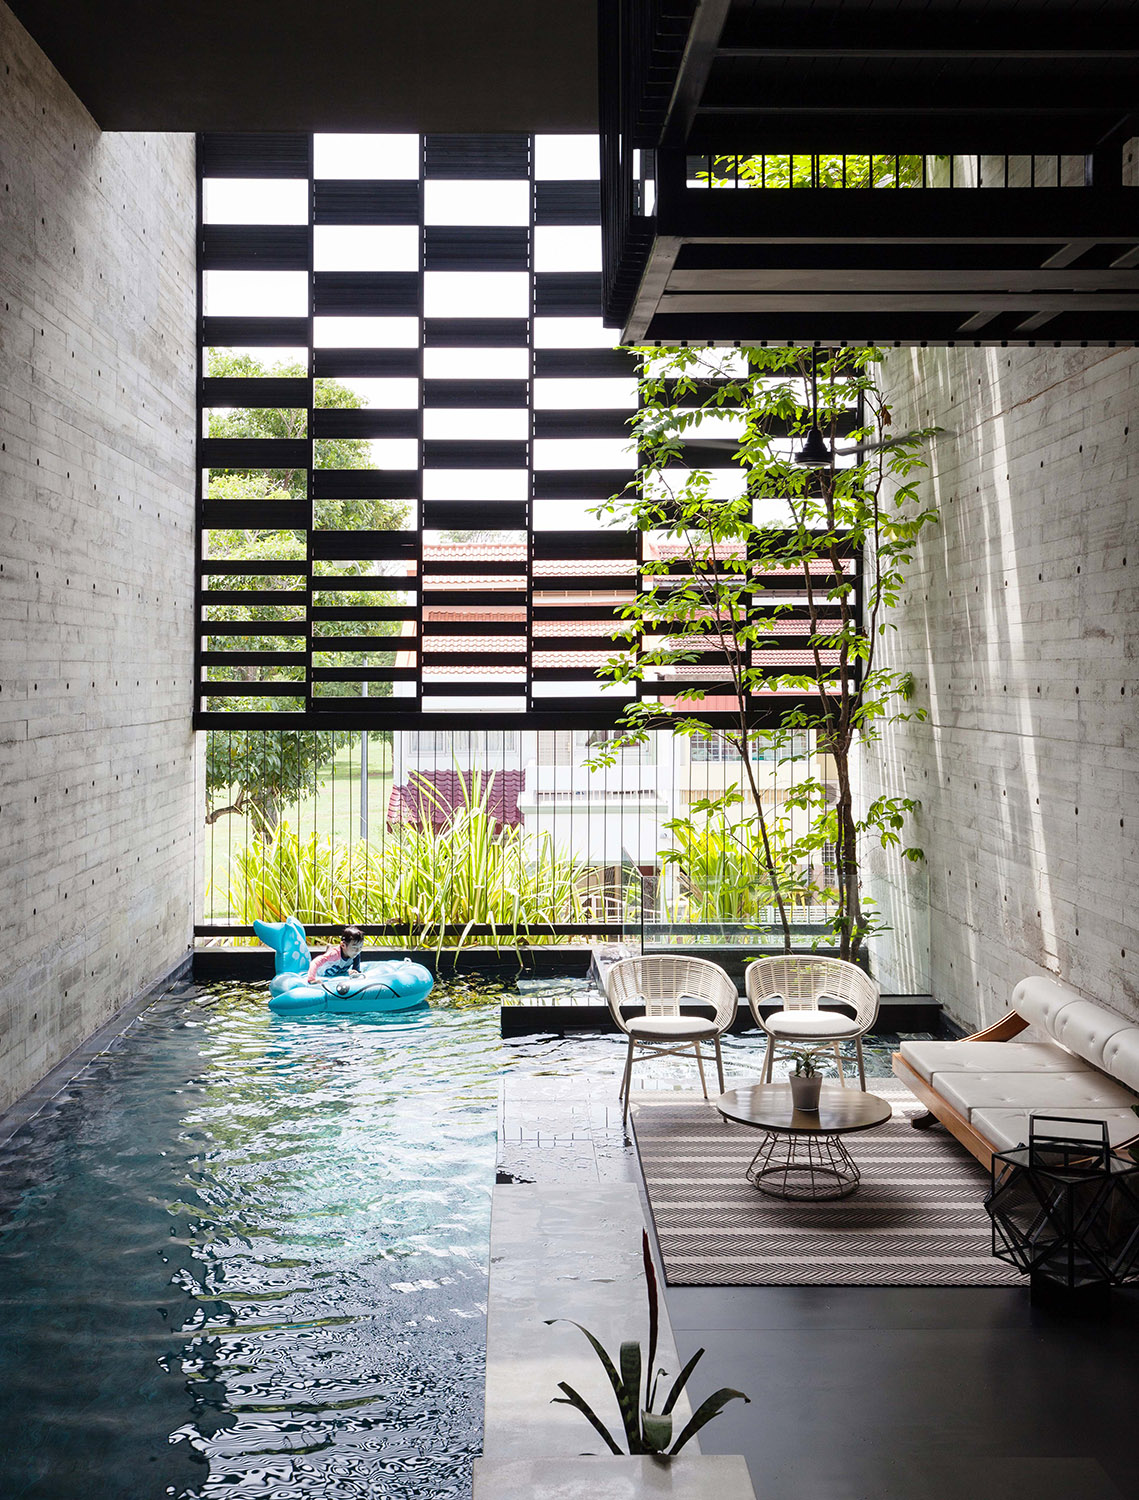 View of the pool Fabian Ong